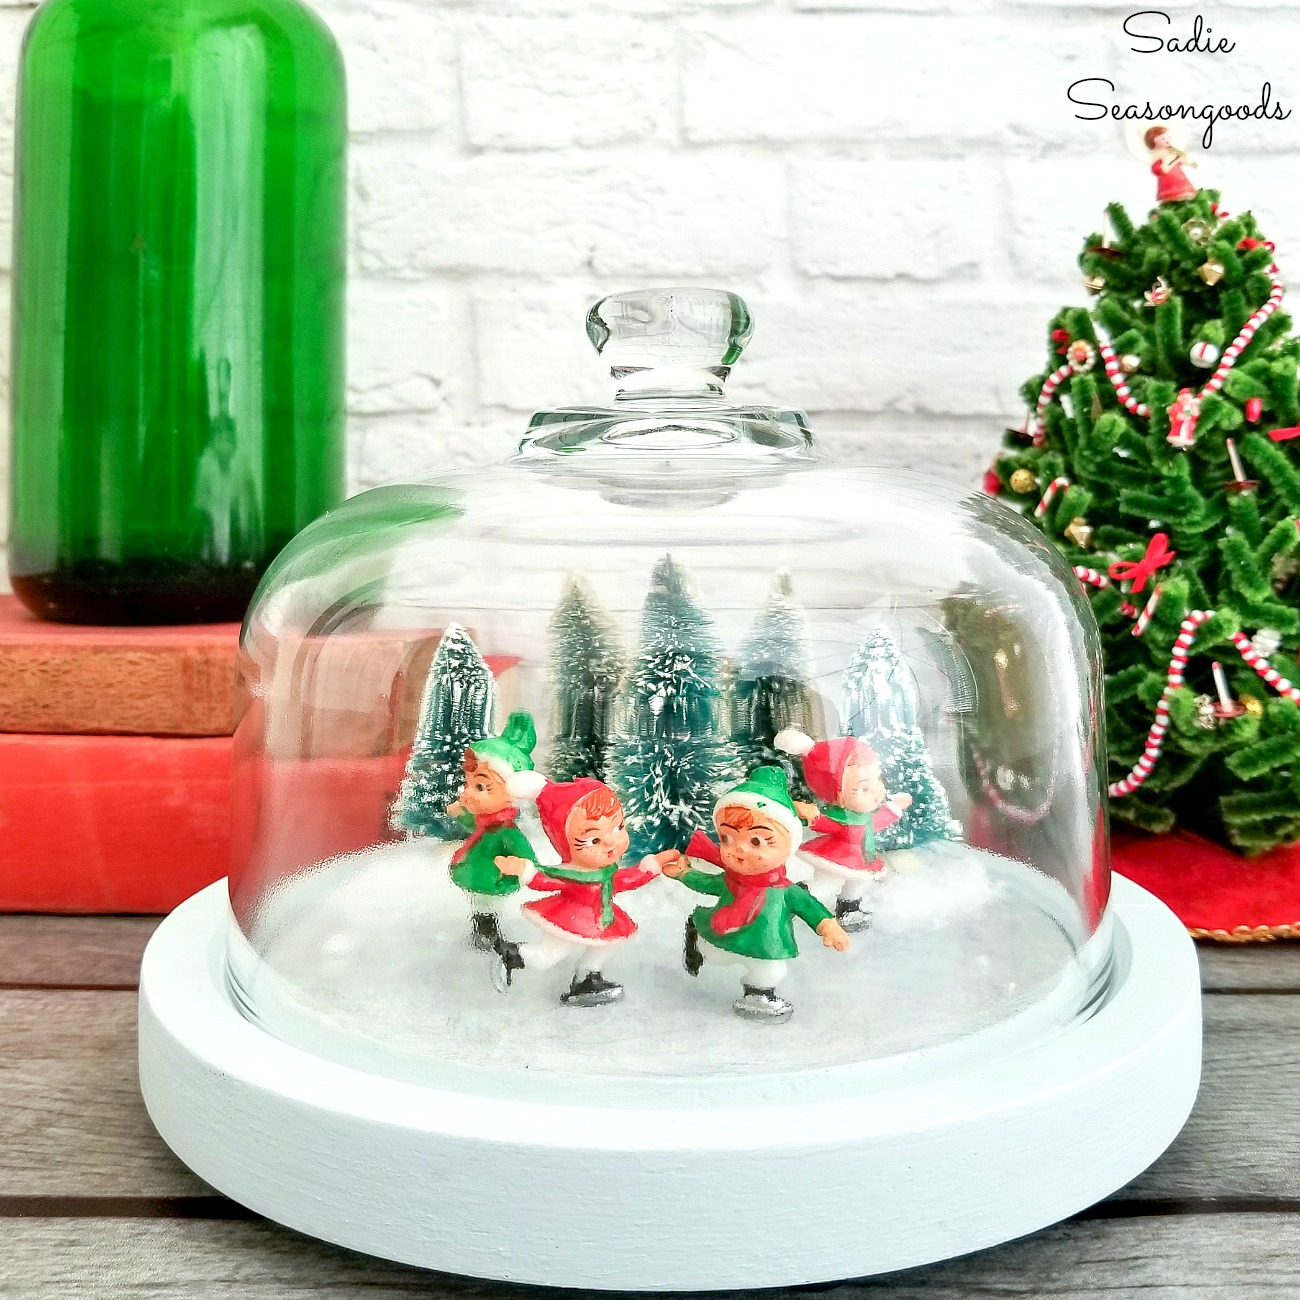 Upcycling a Cheese Dome or Glass Cloche into a Frozen Pond and Winter Scene